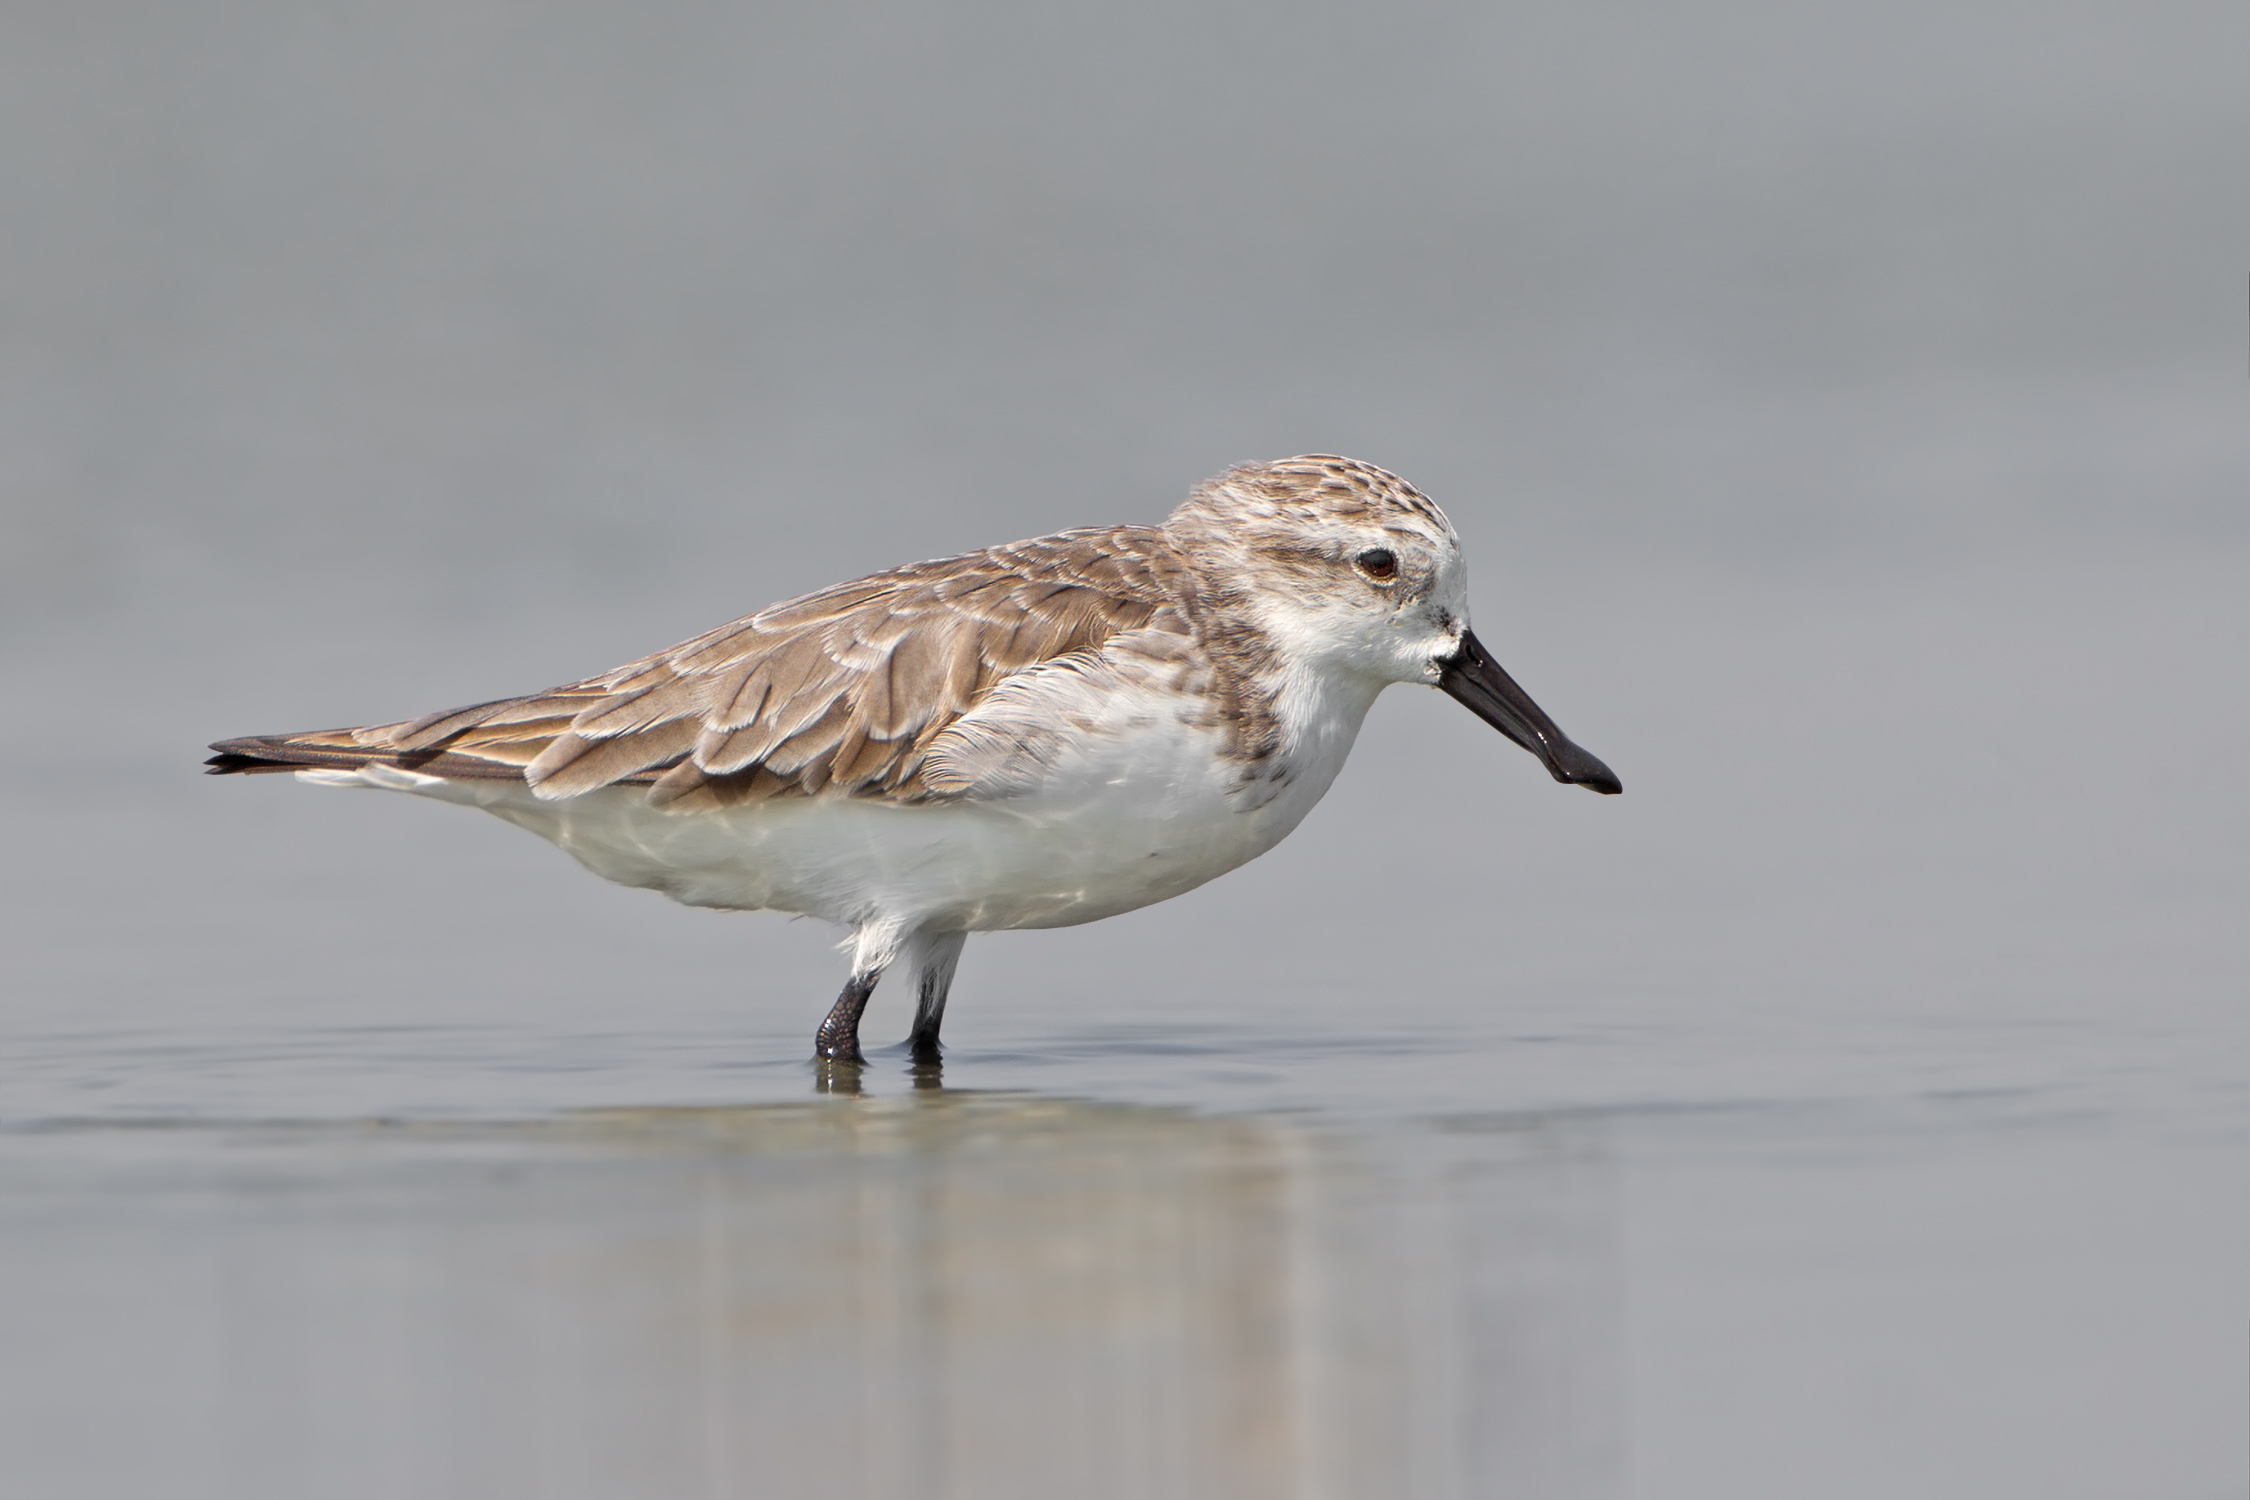 Spoon-billed Sandpiper wallpaper